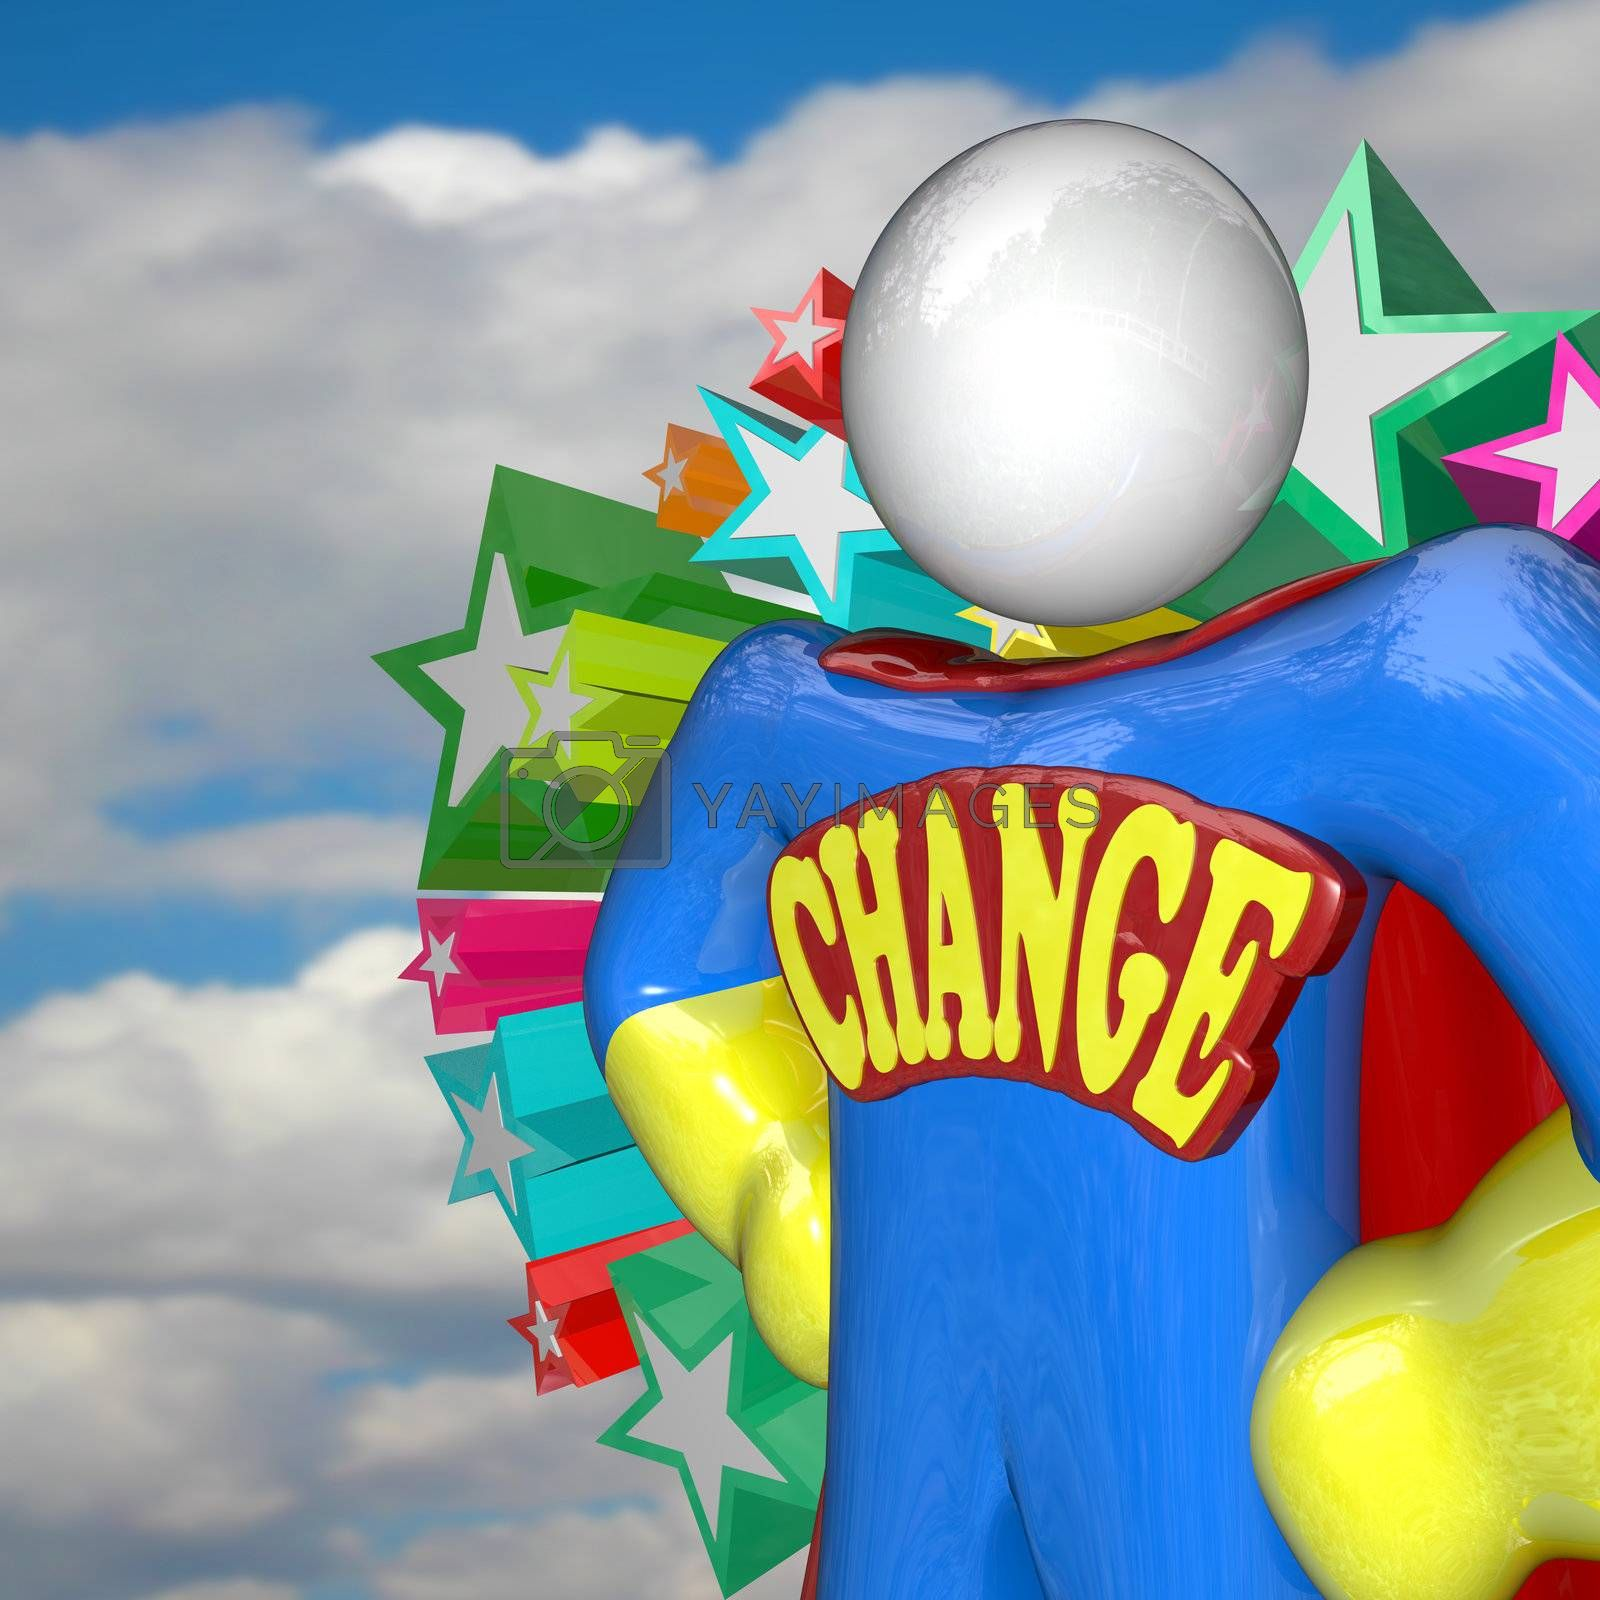 A superhero stands with the word Change as an emblem across his chest, looking to the future to lead a new era of adapting to a changing world and evolving to survive